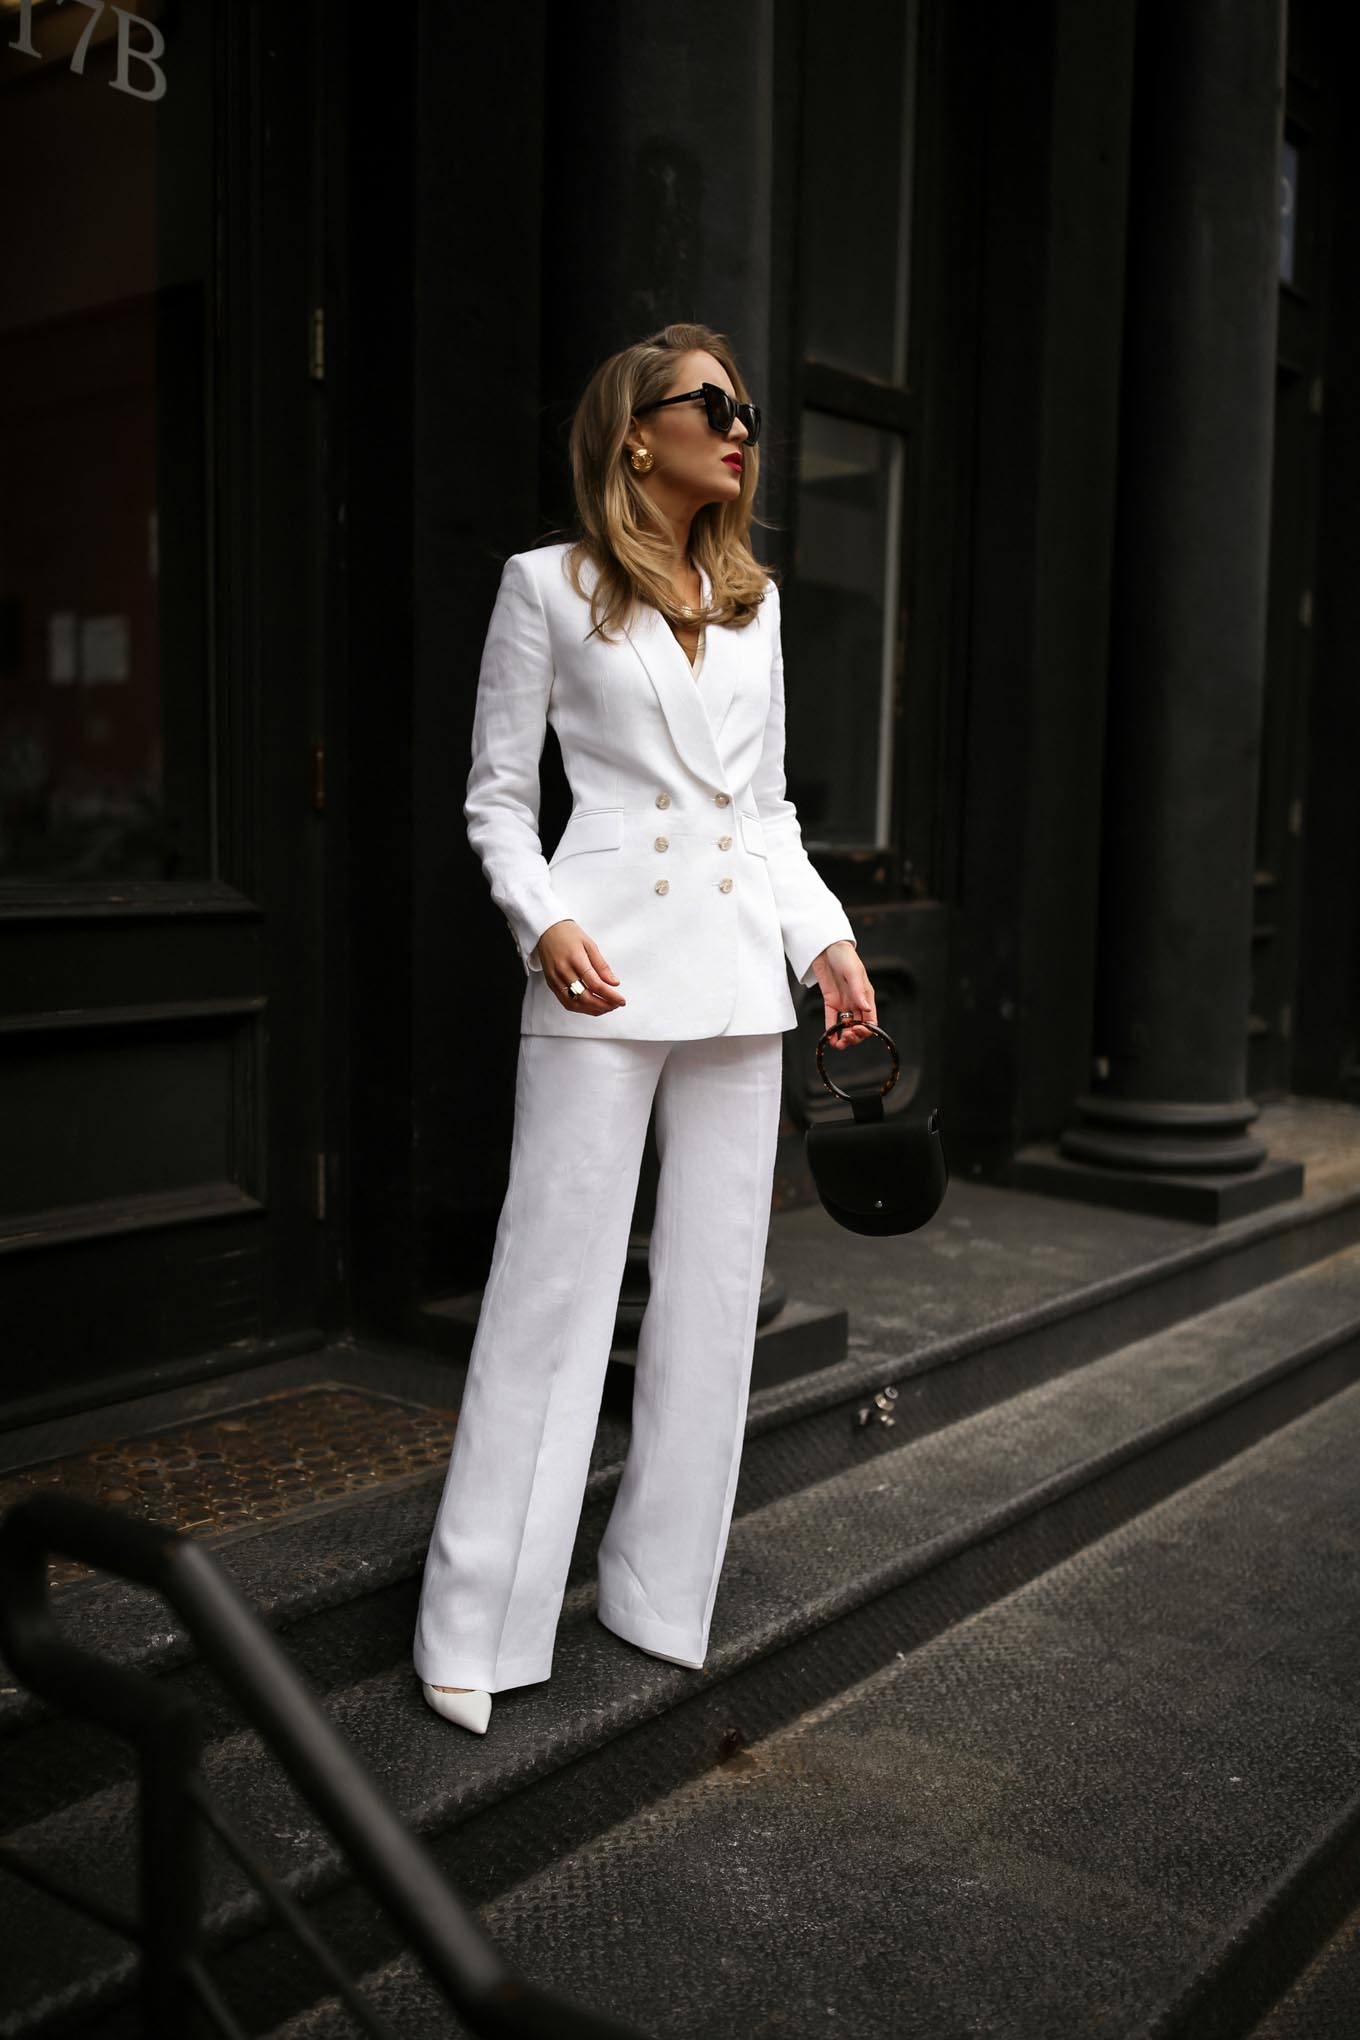 theory-white-linen-suit-double-breasted-jacket-wide-leg-pants-classic-summer-work-wear-professional-women-style-3-680x1020@2x